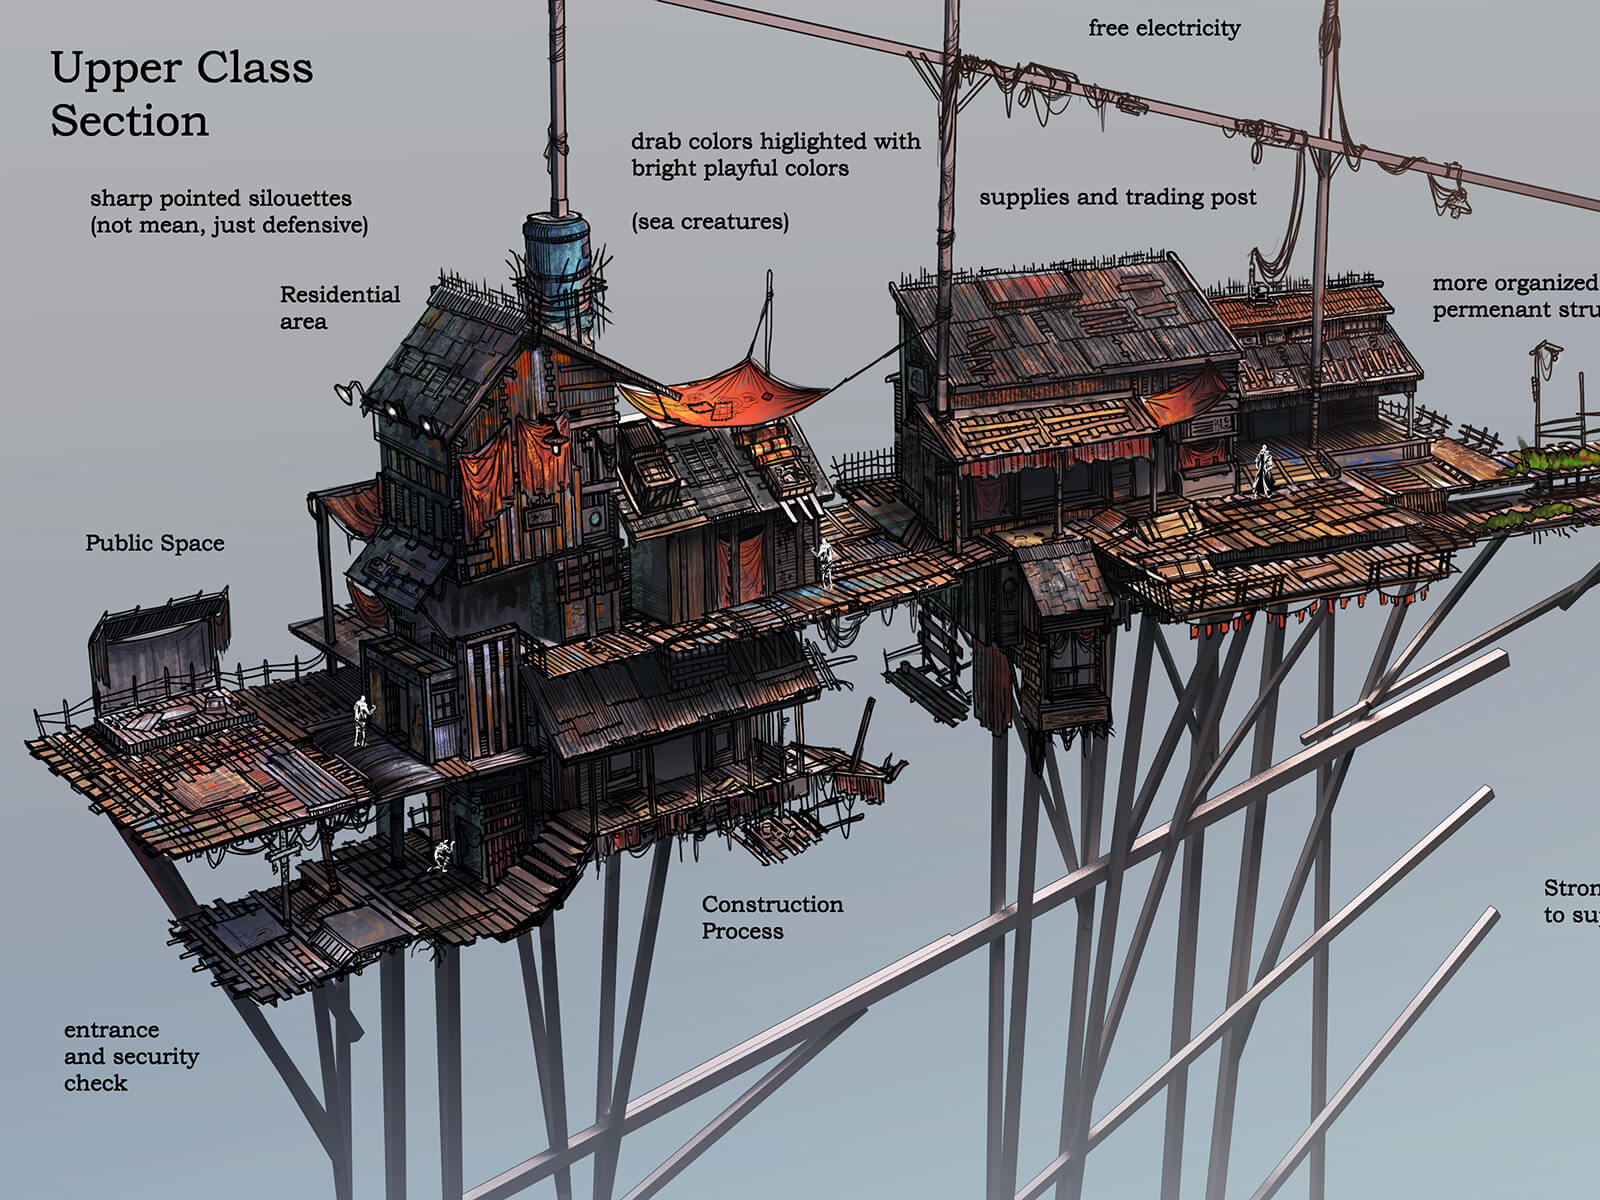 Detailed drawing of buildings built on spindly branches